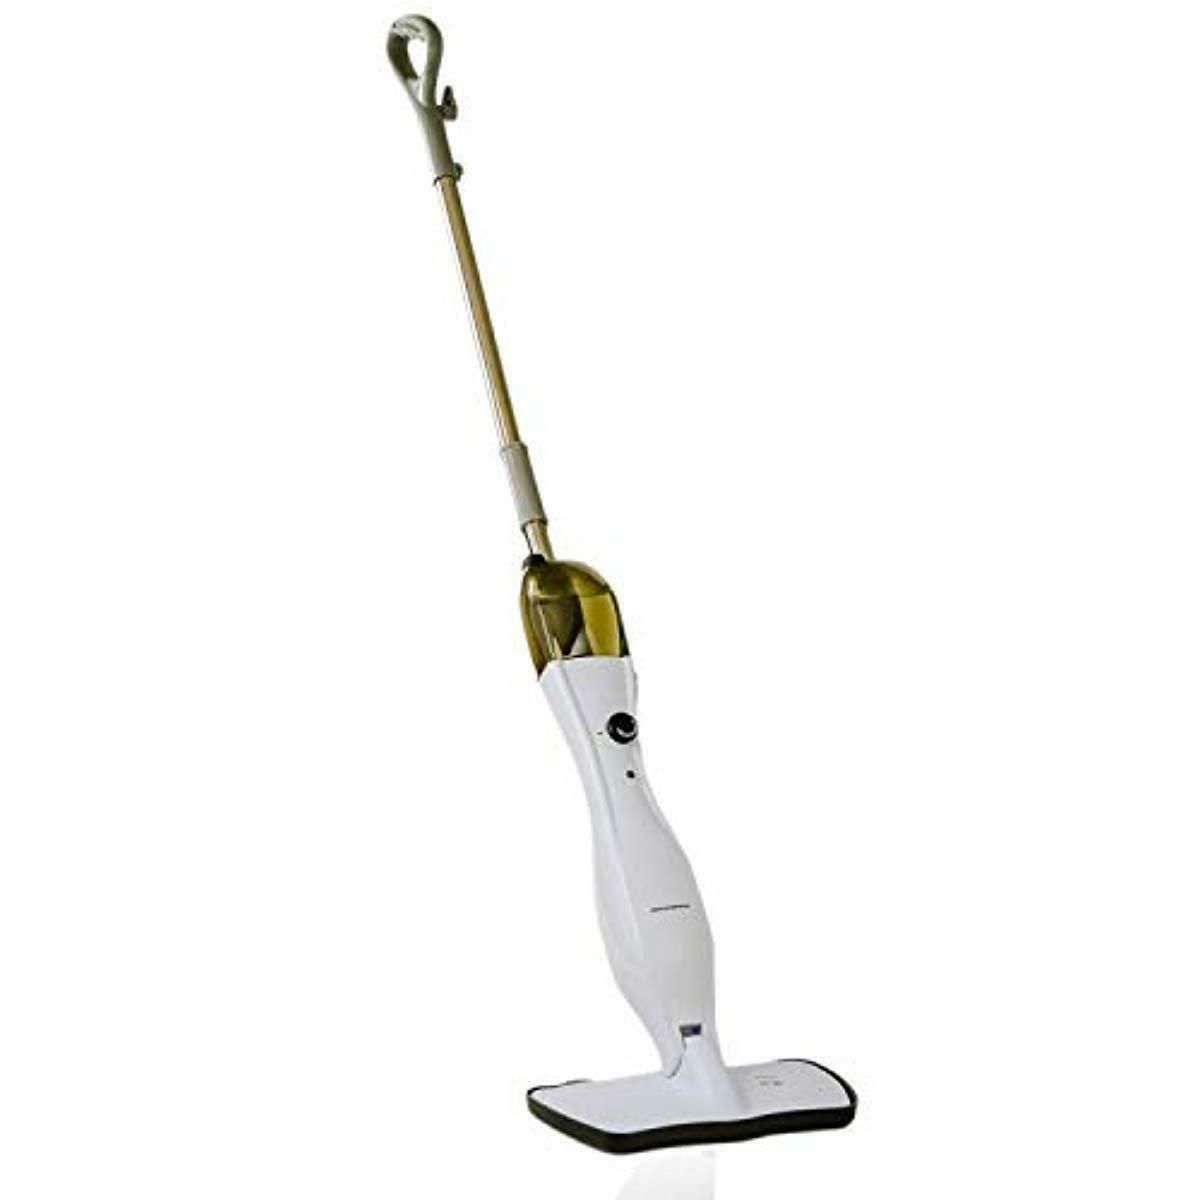 Electric Mop Cleaner Carpet Cleaning Home